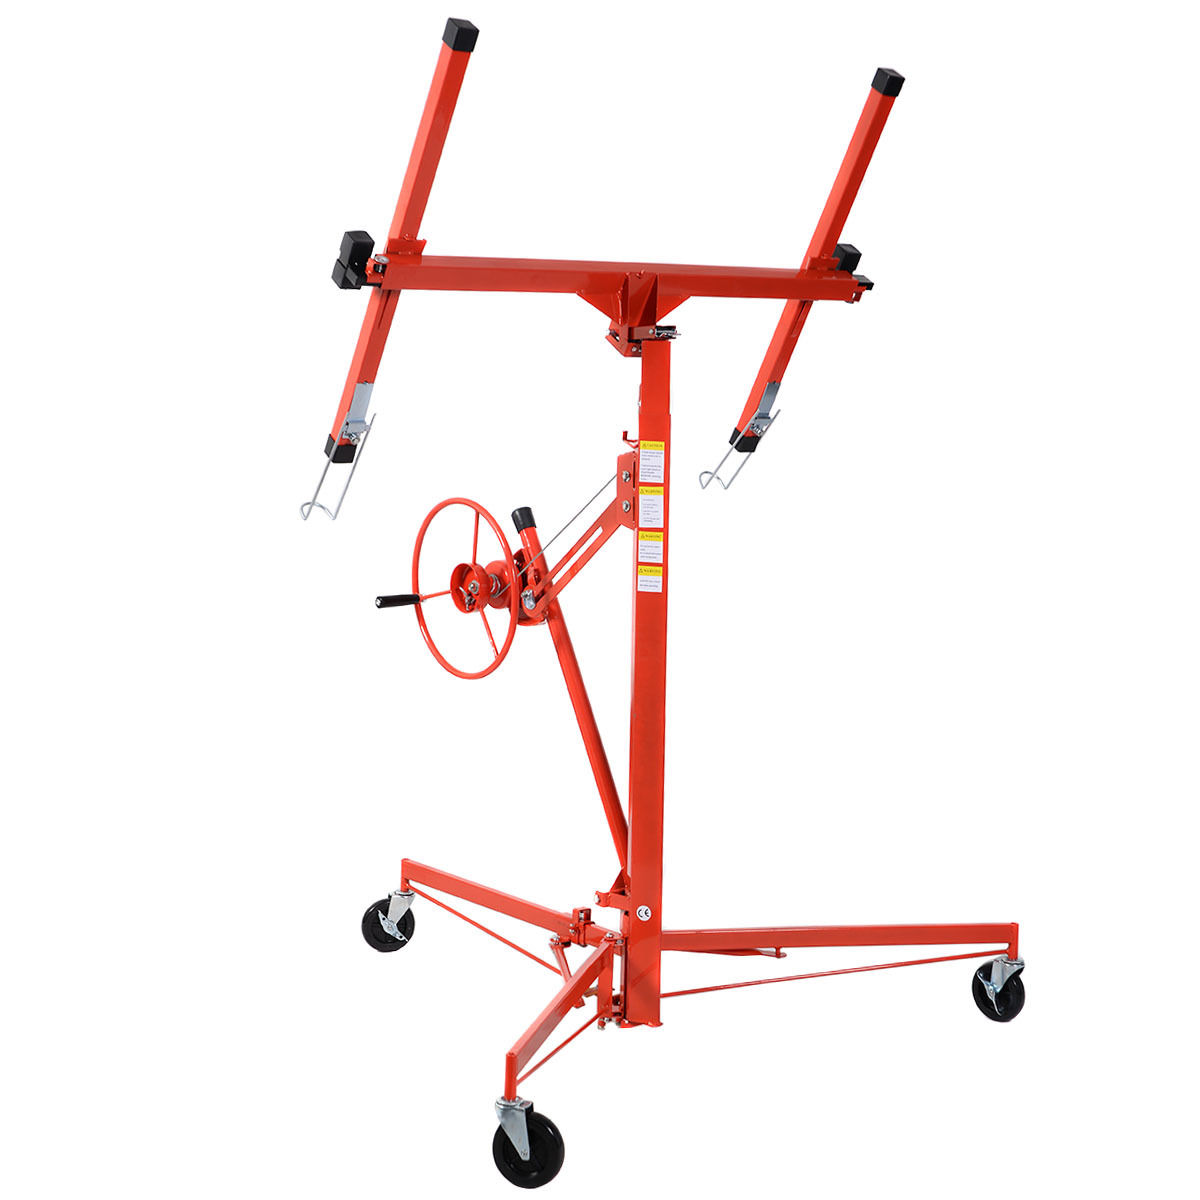 Costway 11' Drywall Lift Panel Hoist Dry Wall Jack Rolling Caster Lifter Lockable by Costway